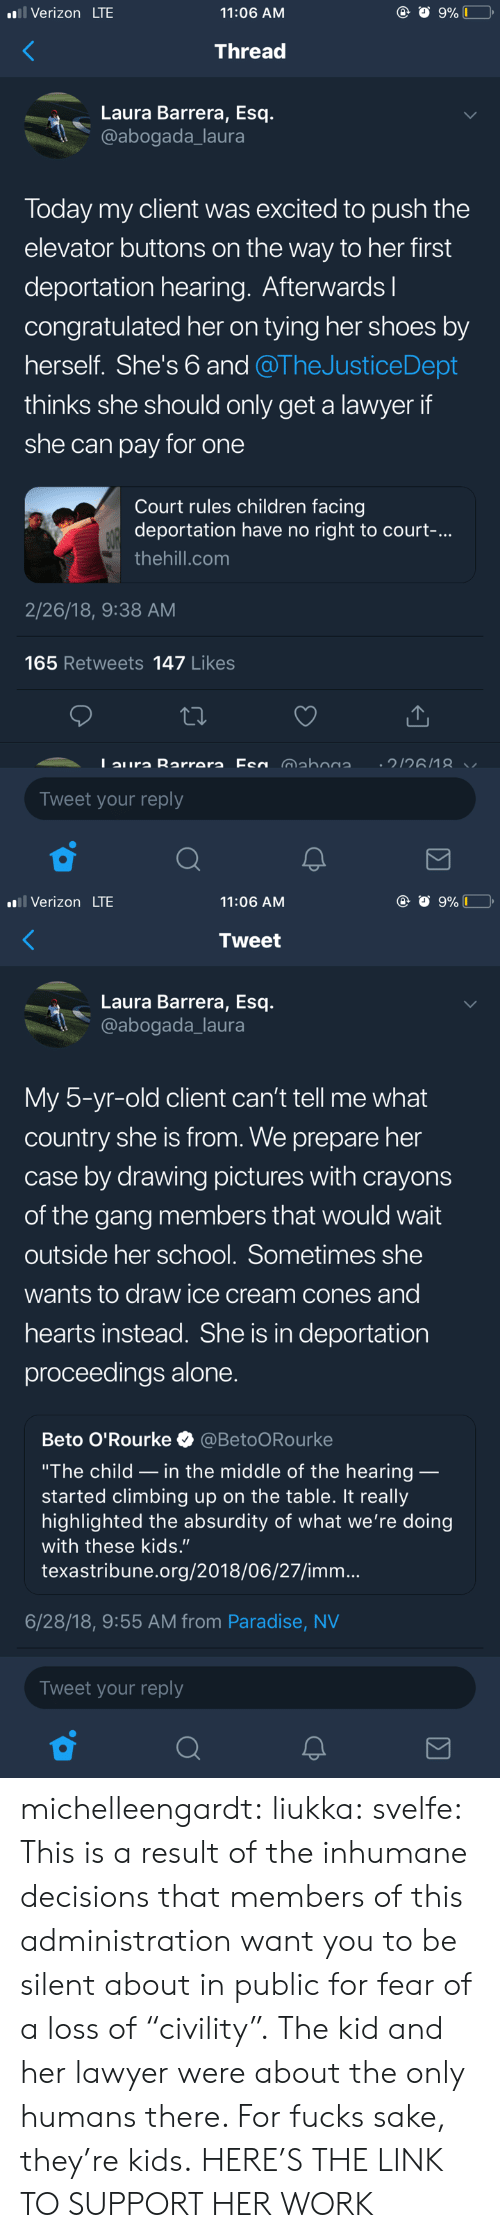 """Being Alone, Children, and Climbing: Verizon LTE  11:06 AM  Thread  Laura Barrera, Esq.  @abogada_laura  Today my client was excited to push the  elevator buttons on the way to her first  deportation hearing. Afterwardsl  congratulated her on tying her shoes by  herself. She's 6 and @TheJusticeDept  thinks she should only get a lawyer if  she can pay for one  Court rules children facing  deportation have no right to court-.  thehill.com  2/26/18, 9:38 AM  165 Retweets 147 Likes  Tweet your reply   Verizon LTE  11:06 AM  Tweet  Laura Barrera, Esq.  @abogada_laura  My 5-yr-old client can't tell me what  country she is from. We prepare her  case by drawing pictures with crayons  of the gang members that would wait  outside her school. Sometimes she  wants to draw ice cream cones and  hearts instead. She is in deportation  proceedings alone  Beto O'Rourke @BetoORourke  """"The child _ in the middle of the hearing  started climbing up on the table. It really  highlighted the absurdity of what we're doing  with these kids.""""  texastribune.org/2018/06/27/imm...  6/28/18, 9:55 AM from Paradise, NV  Tweet your reply michelleengardt:  liukka:  svelfe: This is a result of the inhumane decisions that members of this administration want you to be silent about in public for fear of a loss of """"civility"""".  The kid and her lawyer were about the only humans there.  For fucks sake, they're kids.  HERE'S THE LINK TO SUPPORT HER WORK"""